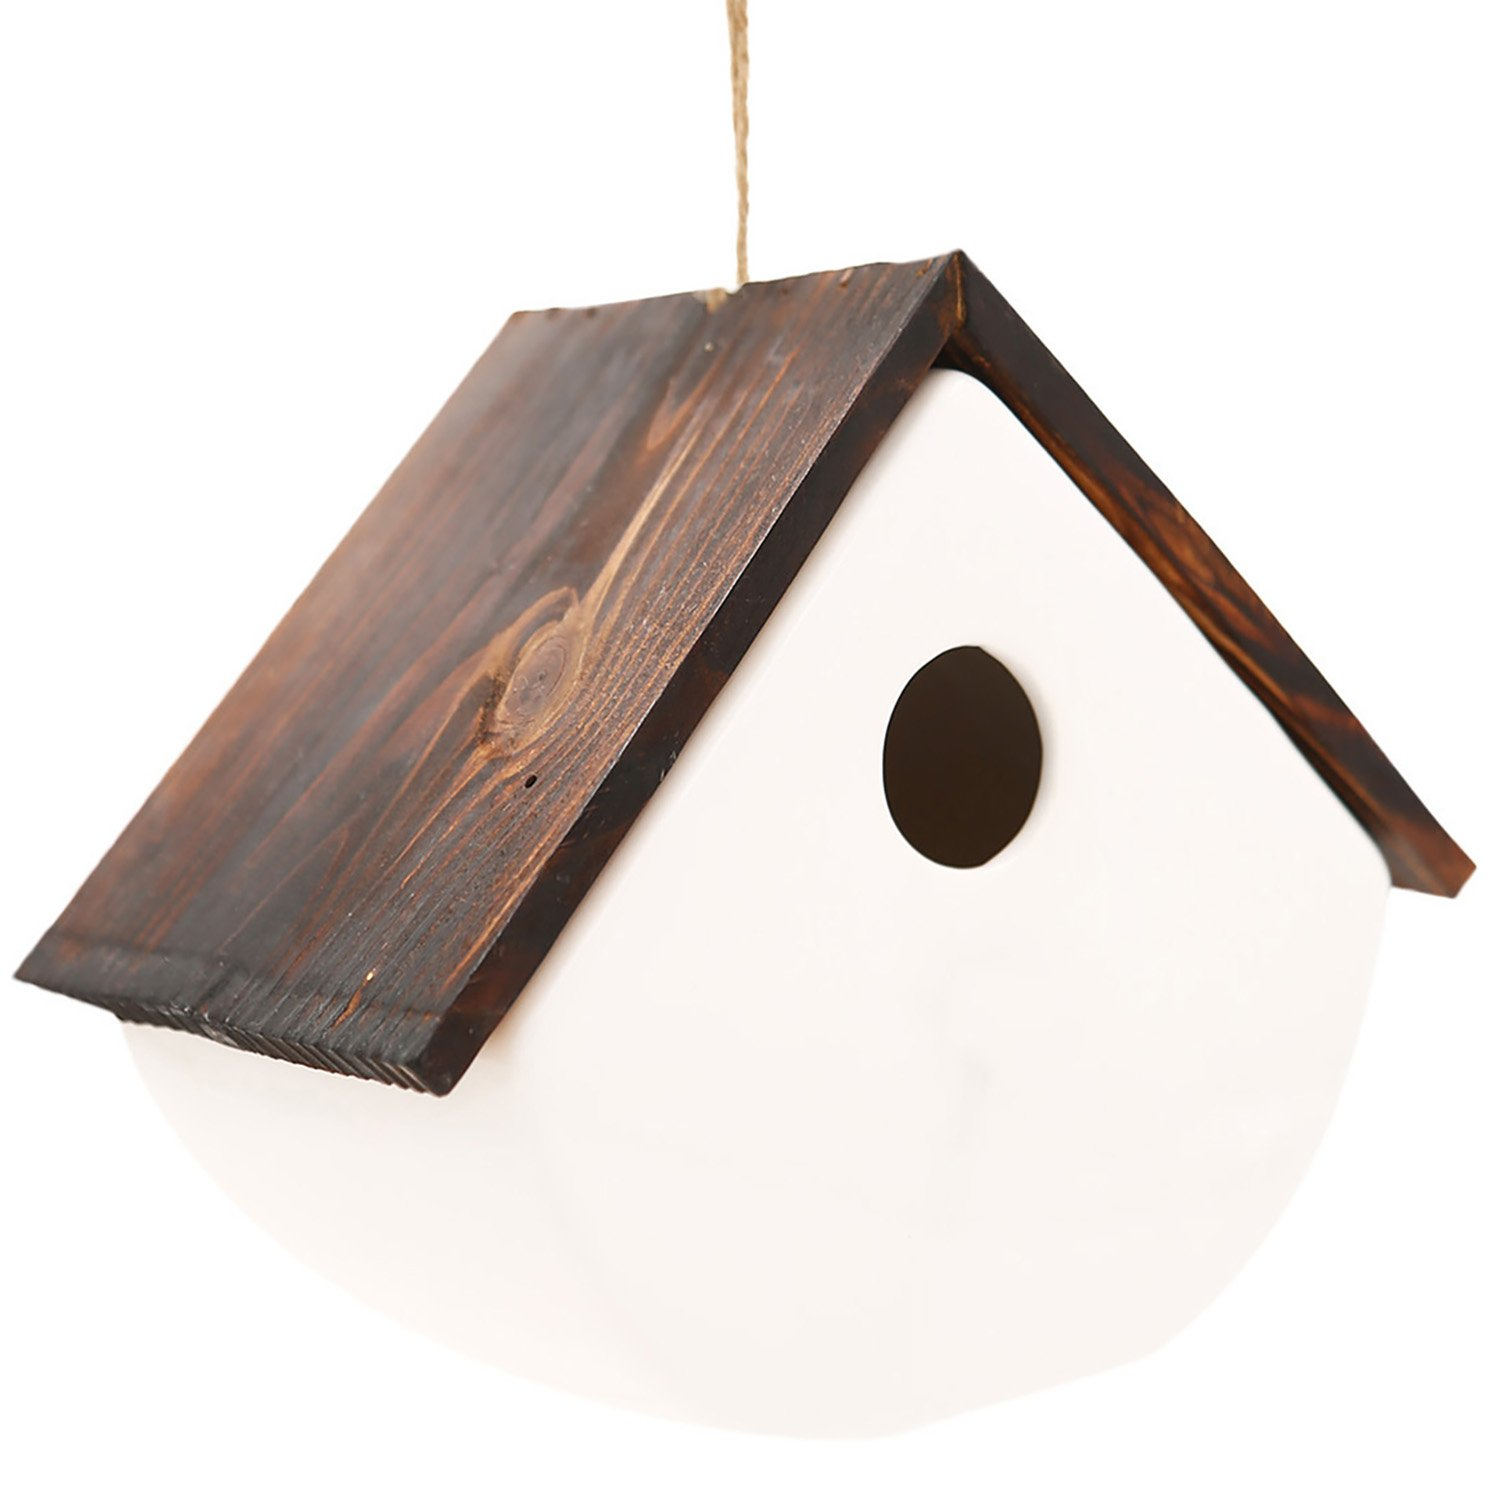 CEDAR HOME Hanging Bird House Outdoor Garden Patio Decorative Resin Pet Cottage White Ceramic Chalet Birdhouse